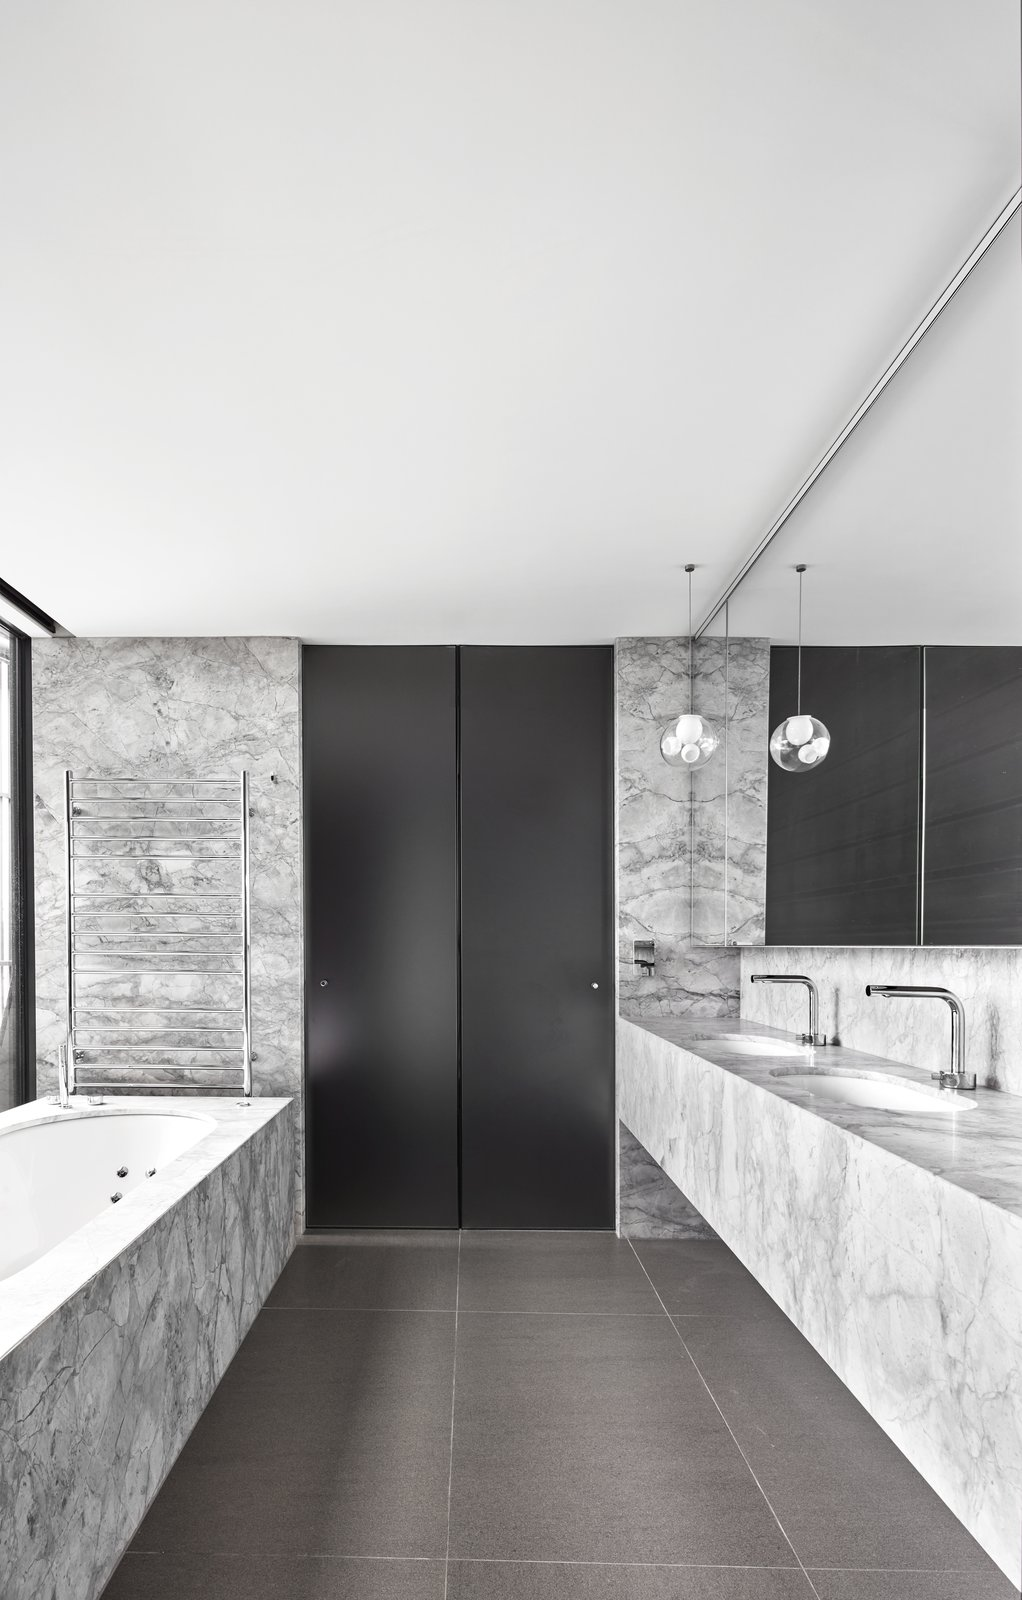 Bath, Soaking, Marble, Undermount, Pendant, Marble, and Drop In A peek at the bathroom finished with plenty of natural stone.  Best Bath Marble Photos from An Old Kit Home Is Transformed Into a Multi-Generational Abode